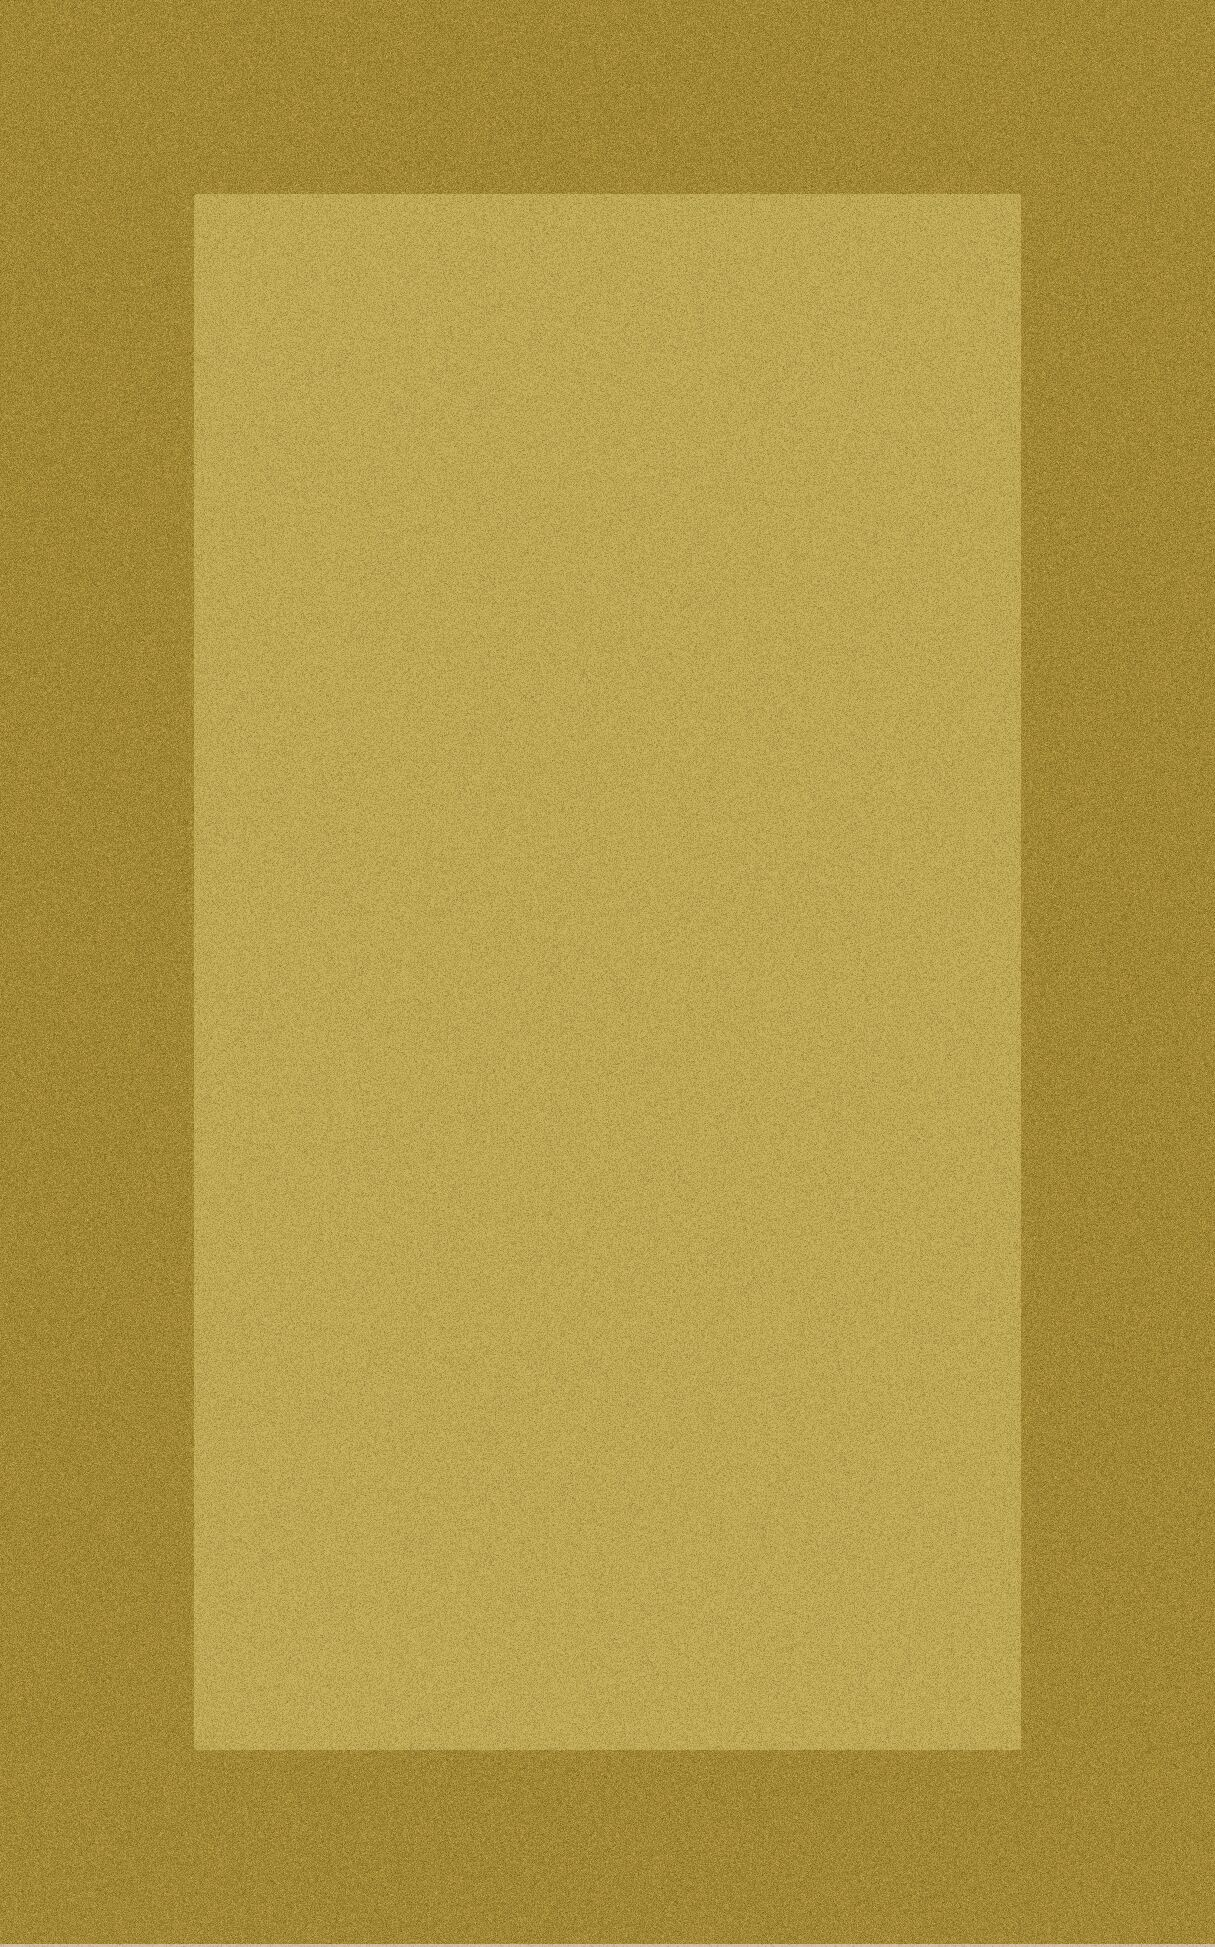 Briargate Hand-Woven Gold Solid Area Rug Rug Size: Rectangle 12' x 15'